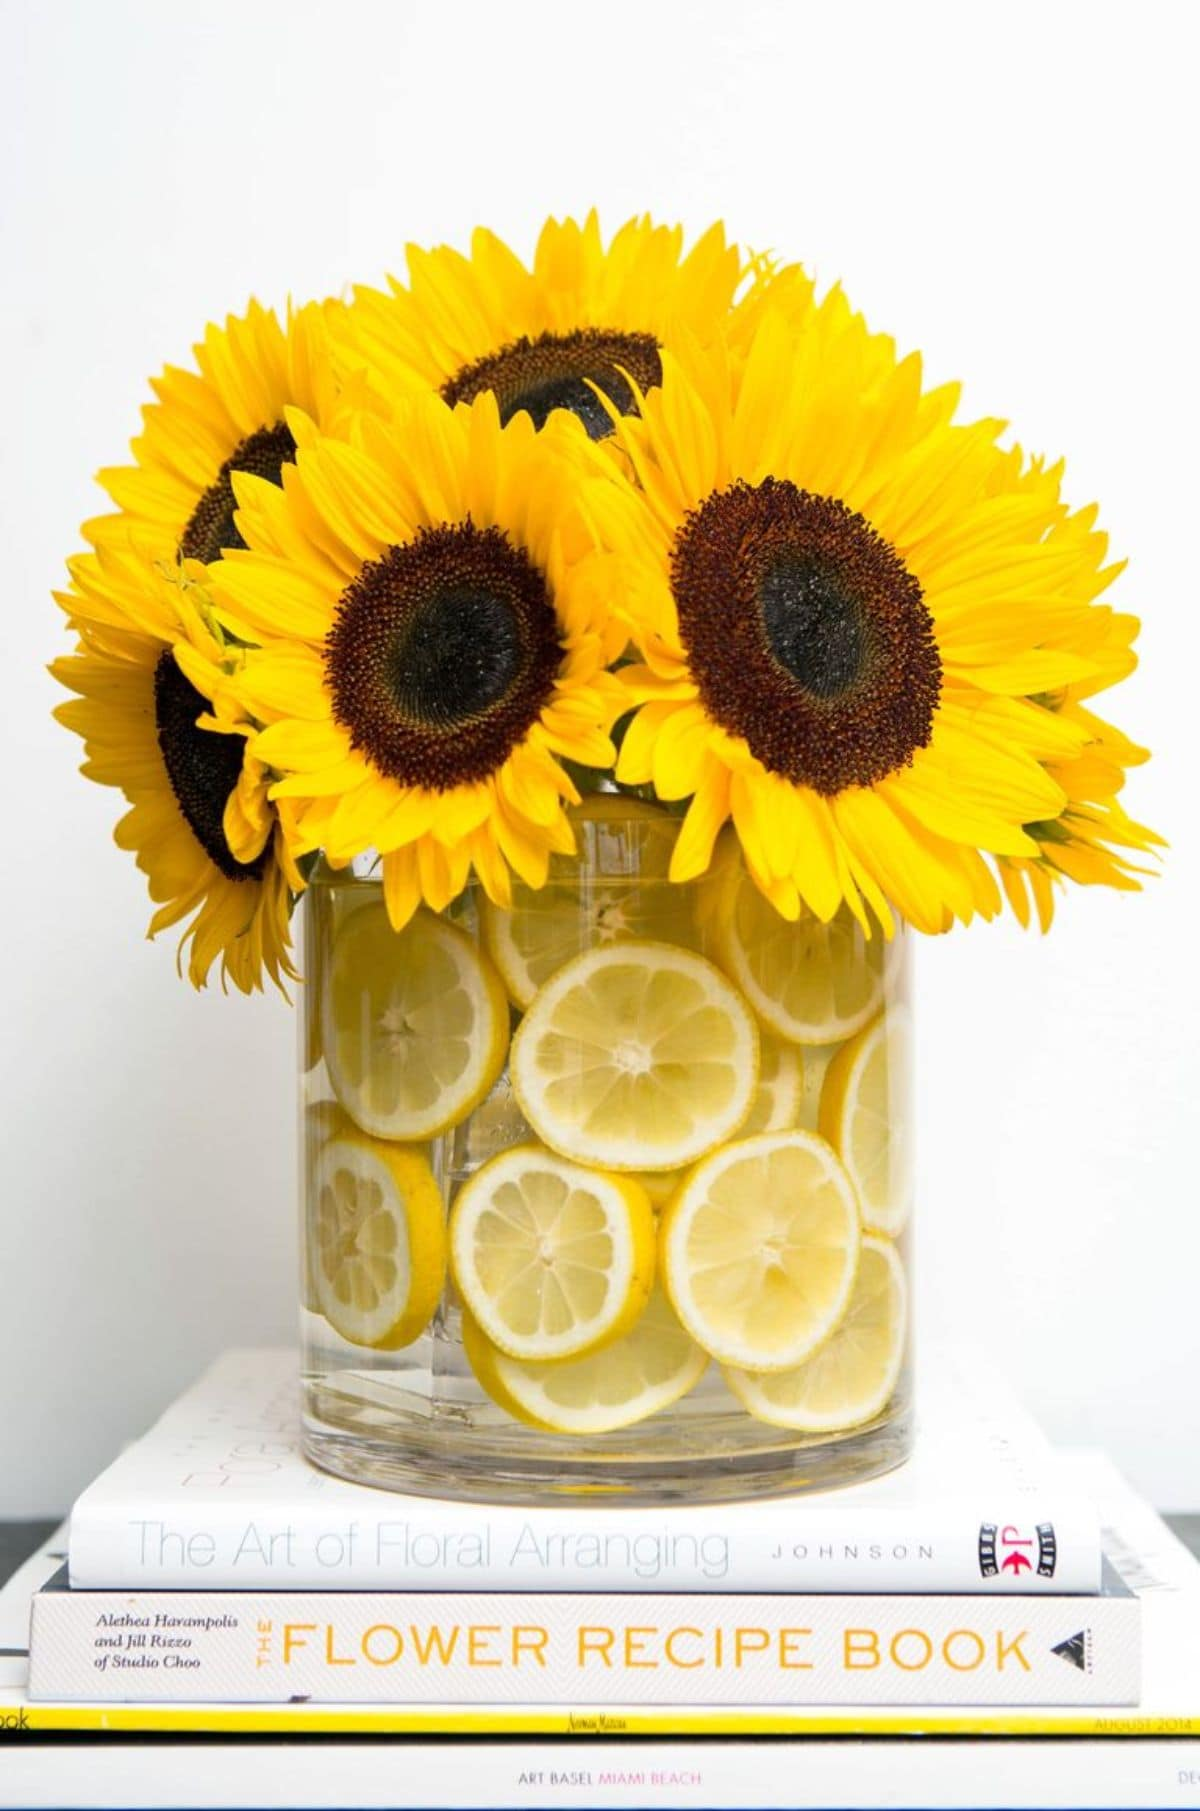 stading ona table is a wide vase filled with lemon slices and sunflowers